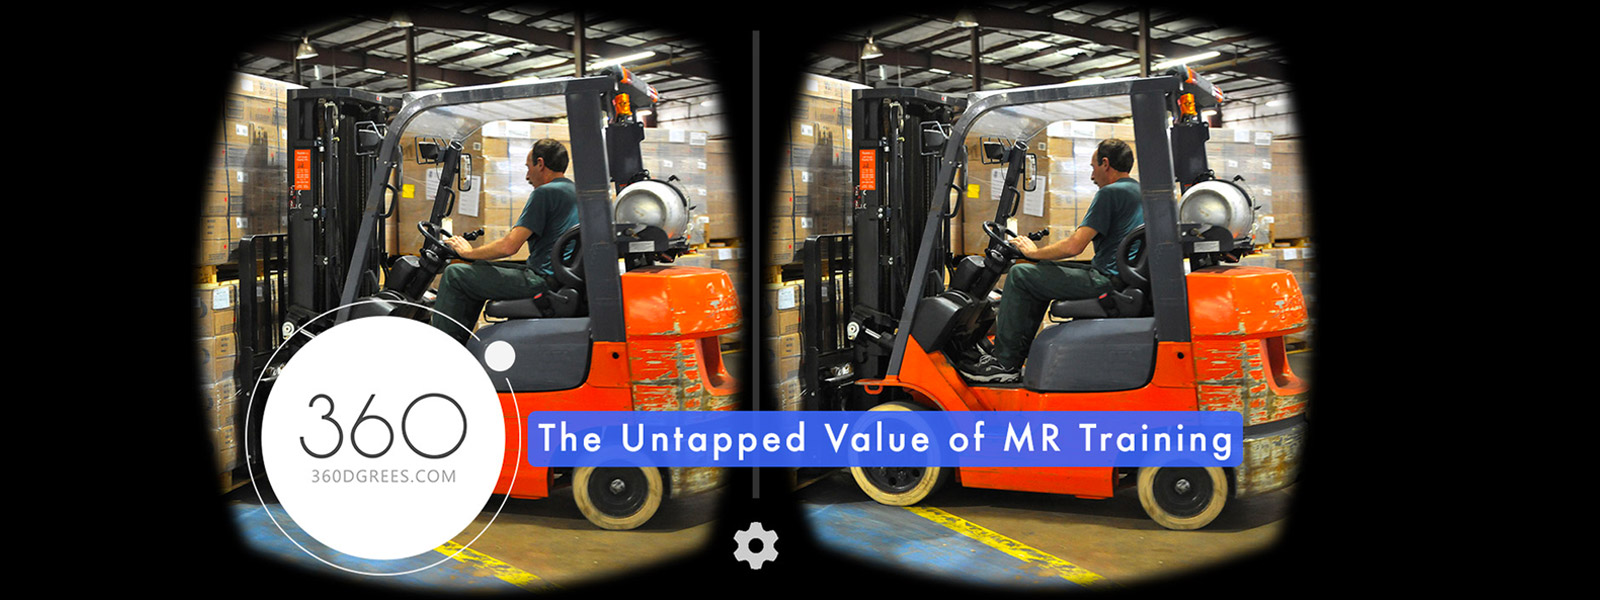 The untapped value of Mr Training